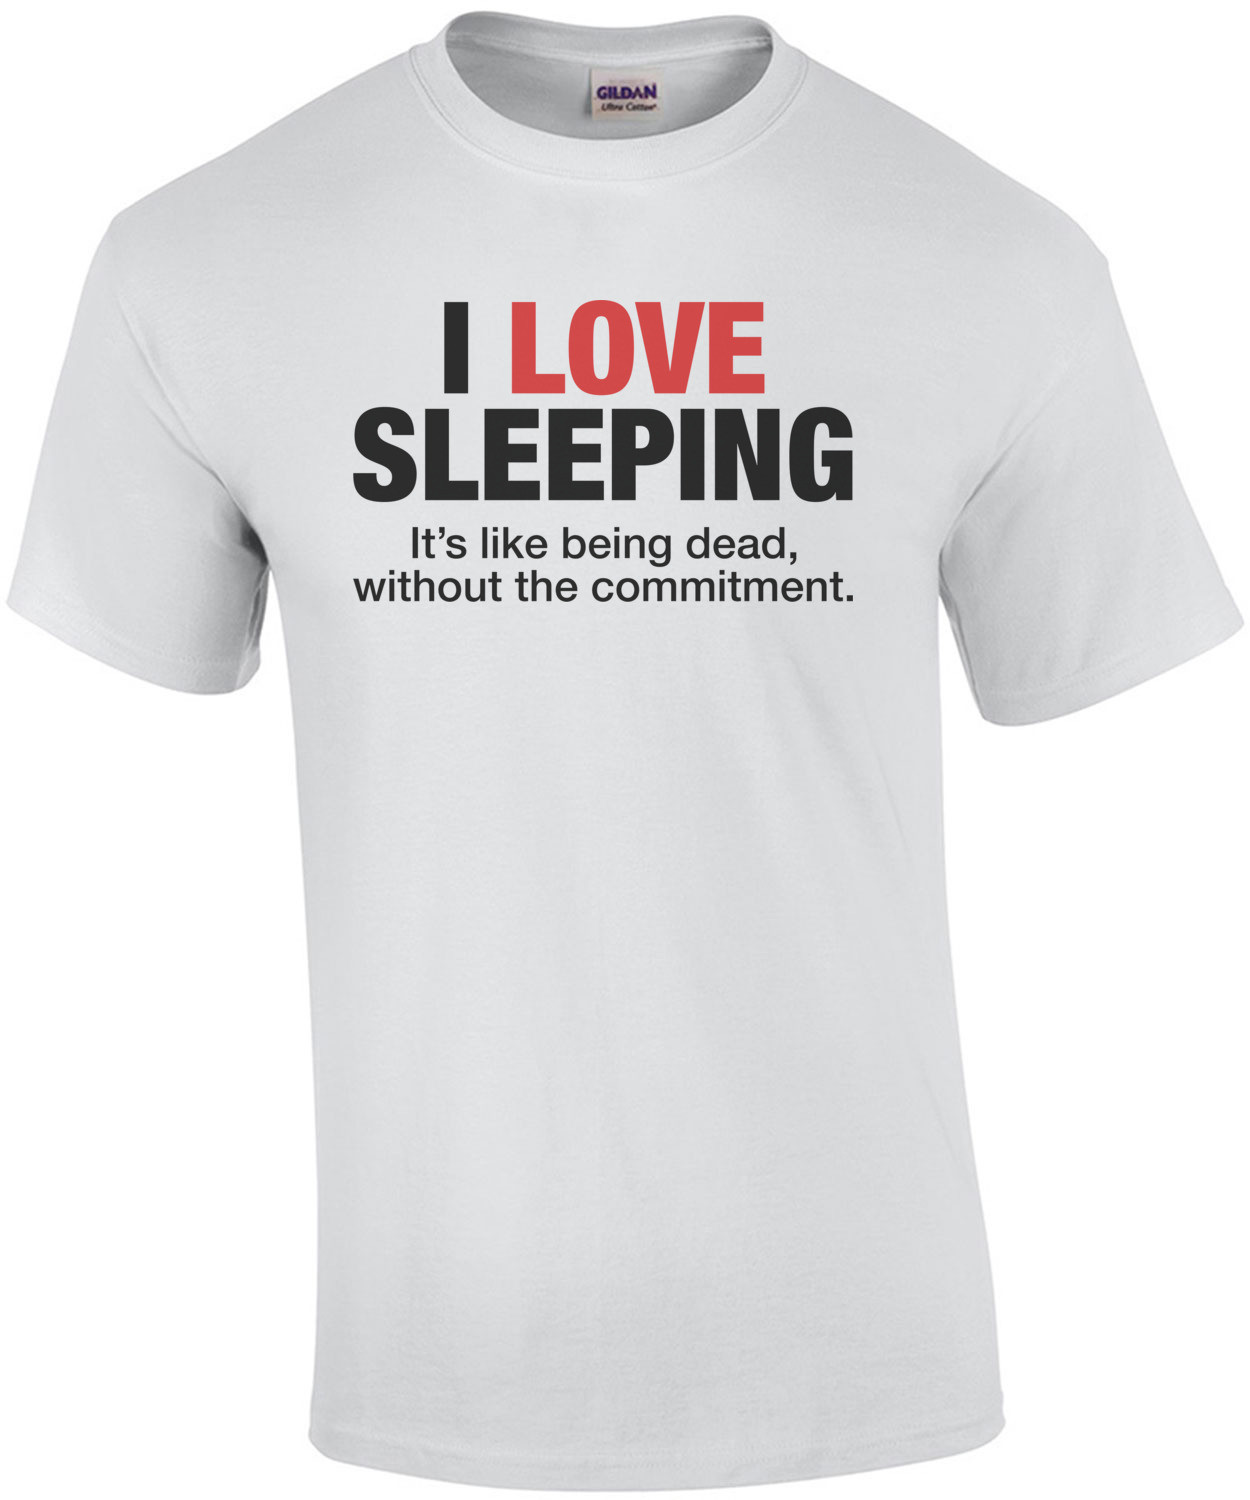 I Love Sleeping, It's Like Being Dead T-Shirt